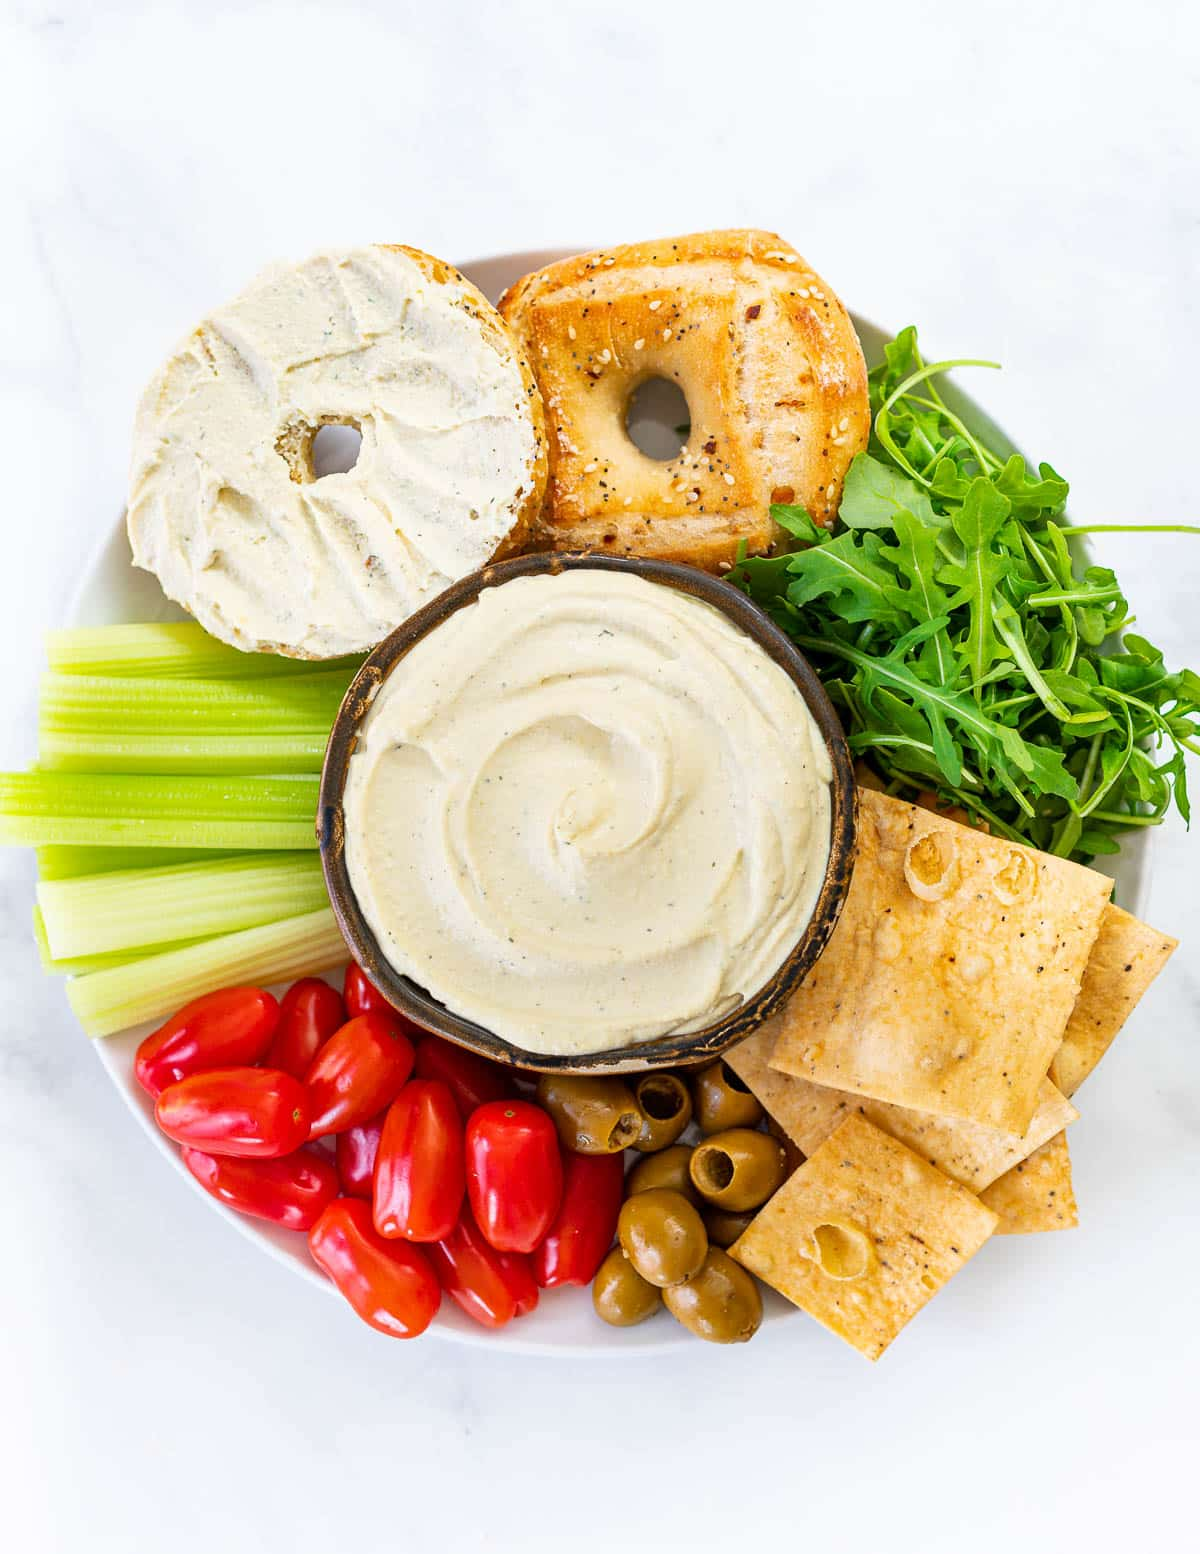 a platter with a bowl of vegan cream cheese, bagels, crackers and vegetables